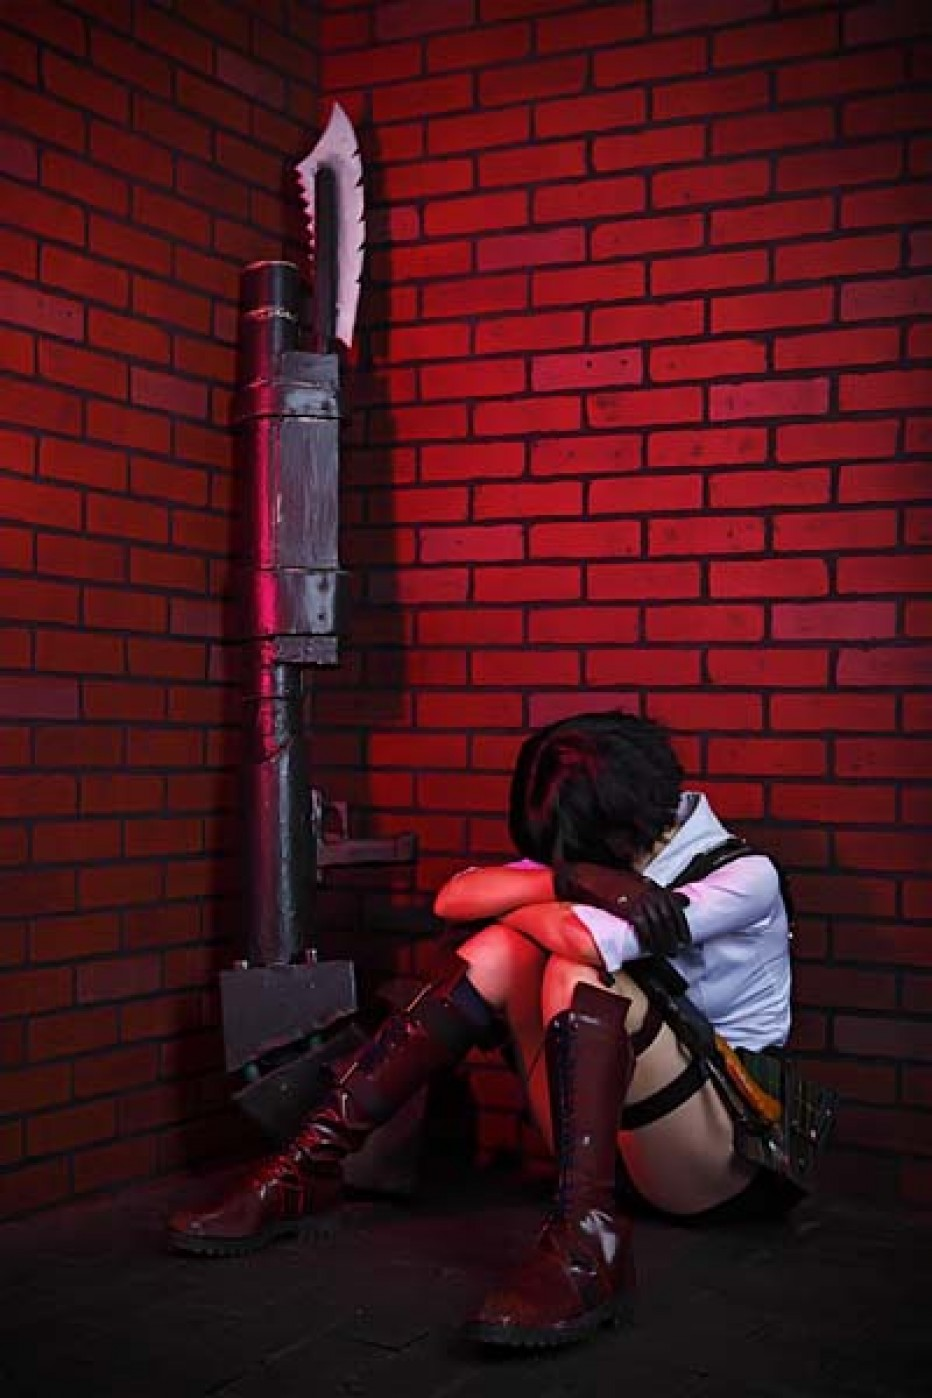 Lady-Devil-May-Cry-Cosplay-Gamers-Heroes-2.jpg